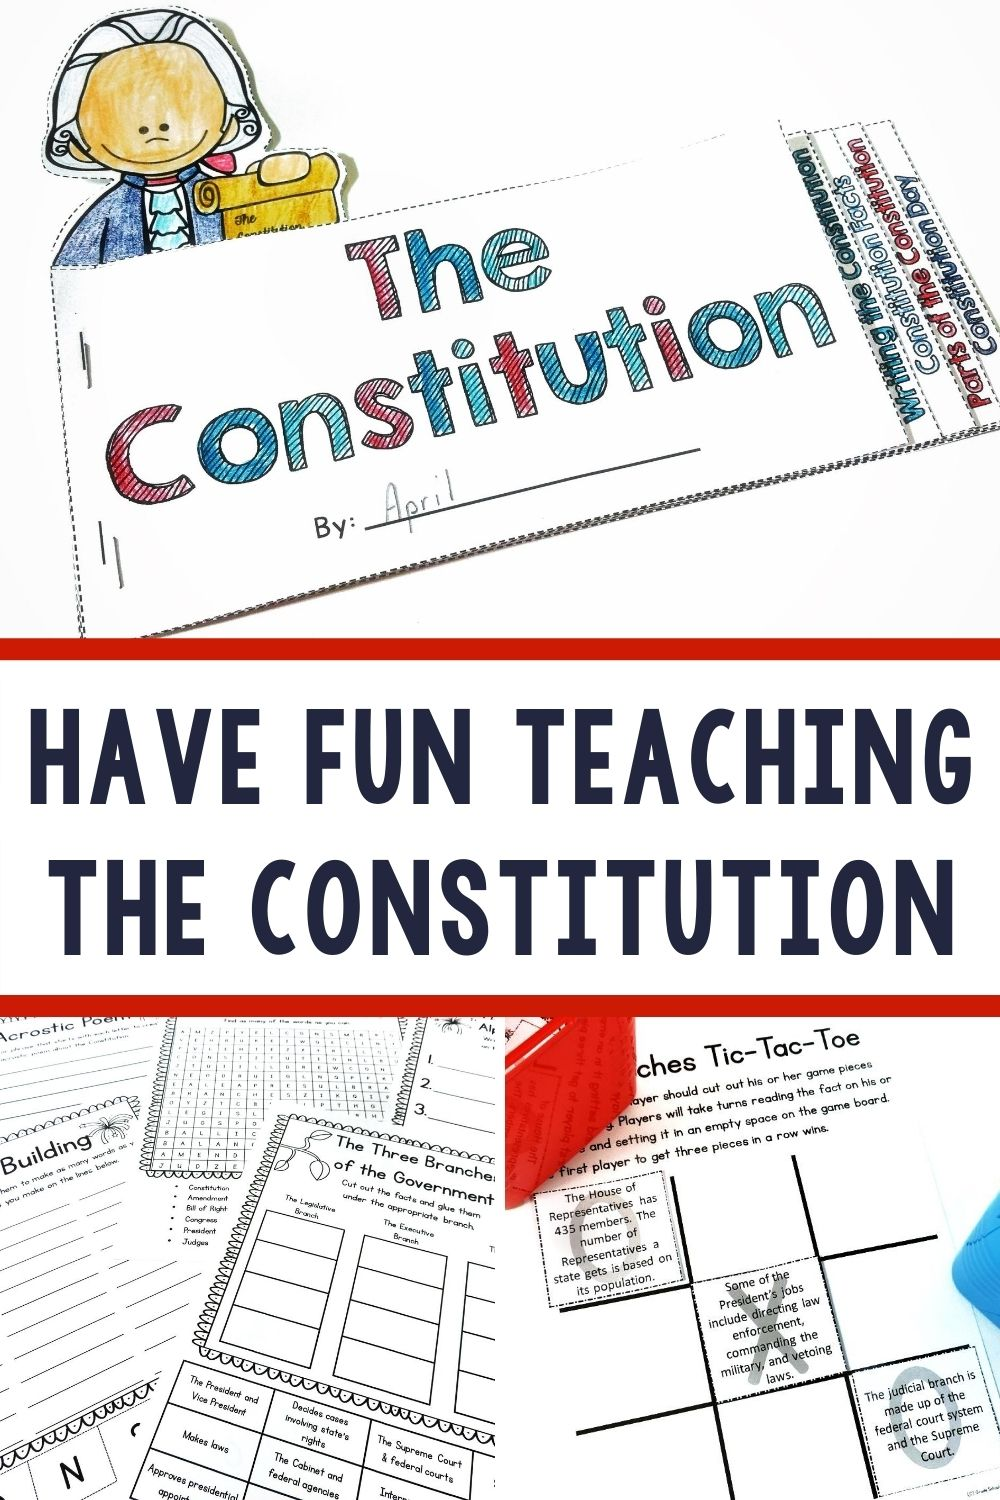 Constitution Lesson Ideas For Kids Third Grade Activities Have Fun Teaching Constitution Lesson [ 1500 x 1000 Pixel ]